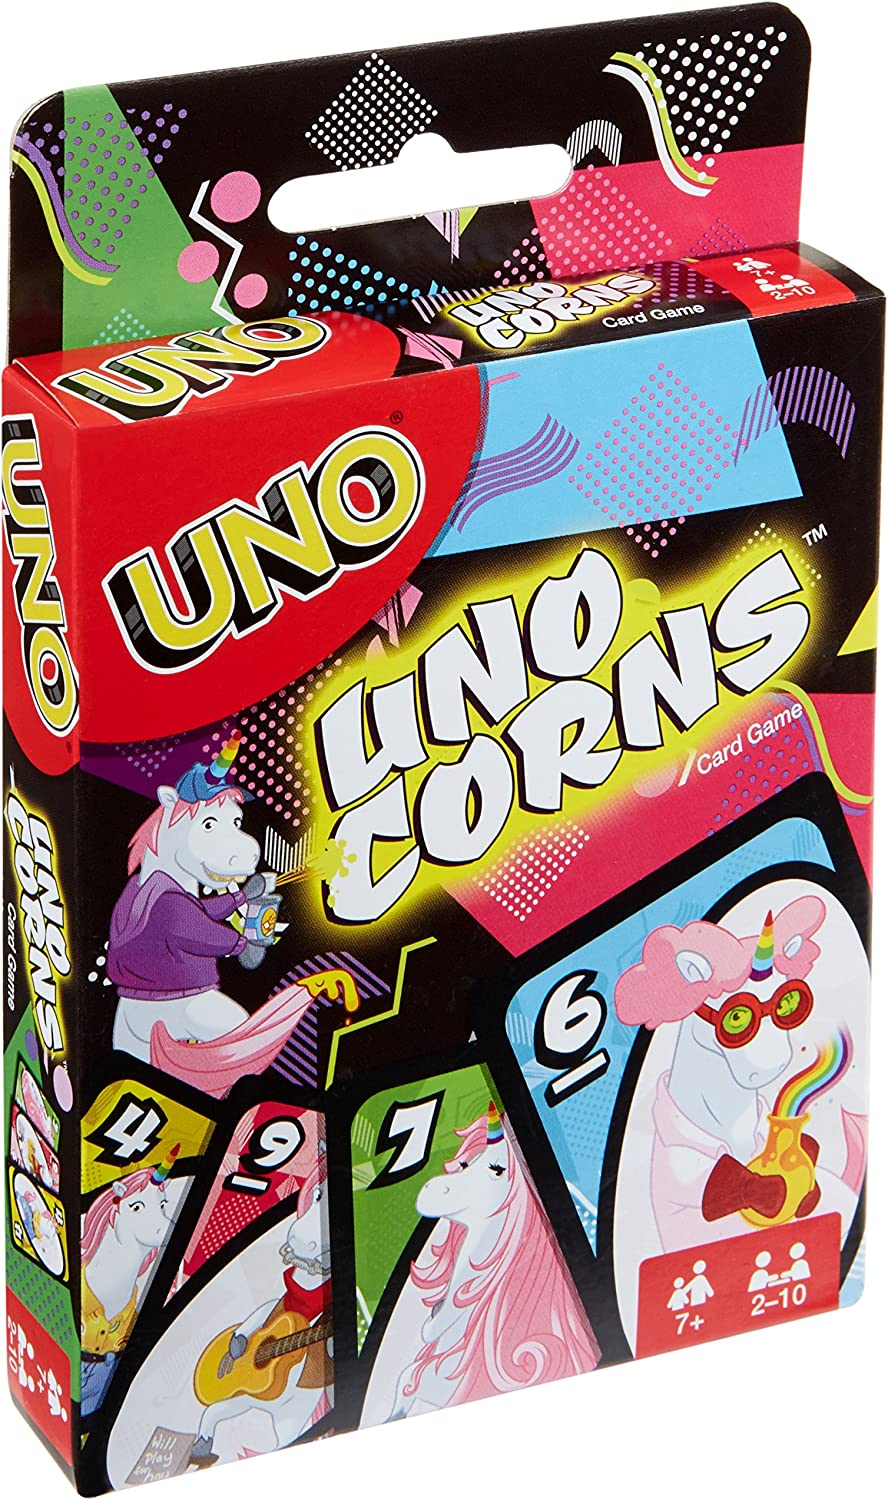 UNO Card Game Family Fun Game 112 Cards Latest Version UK Seller